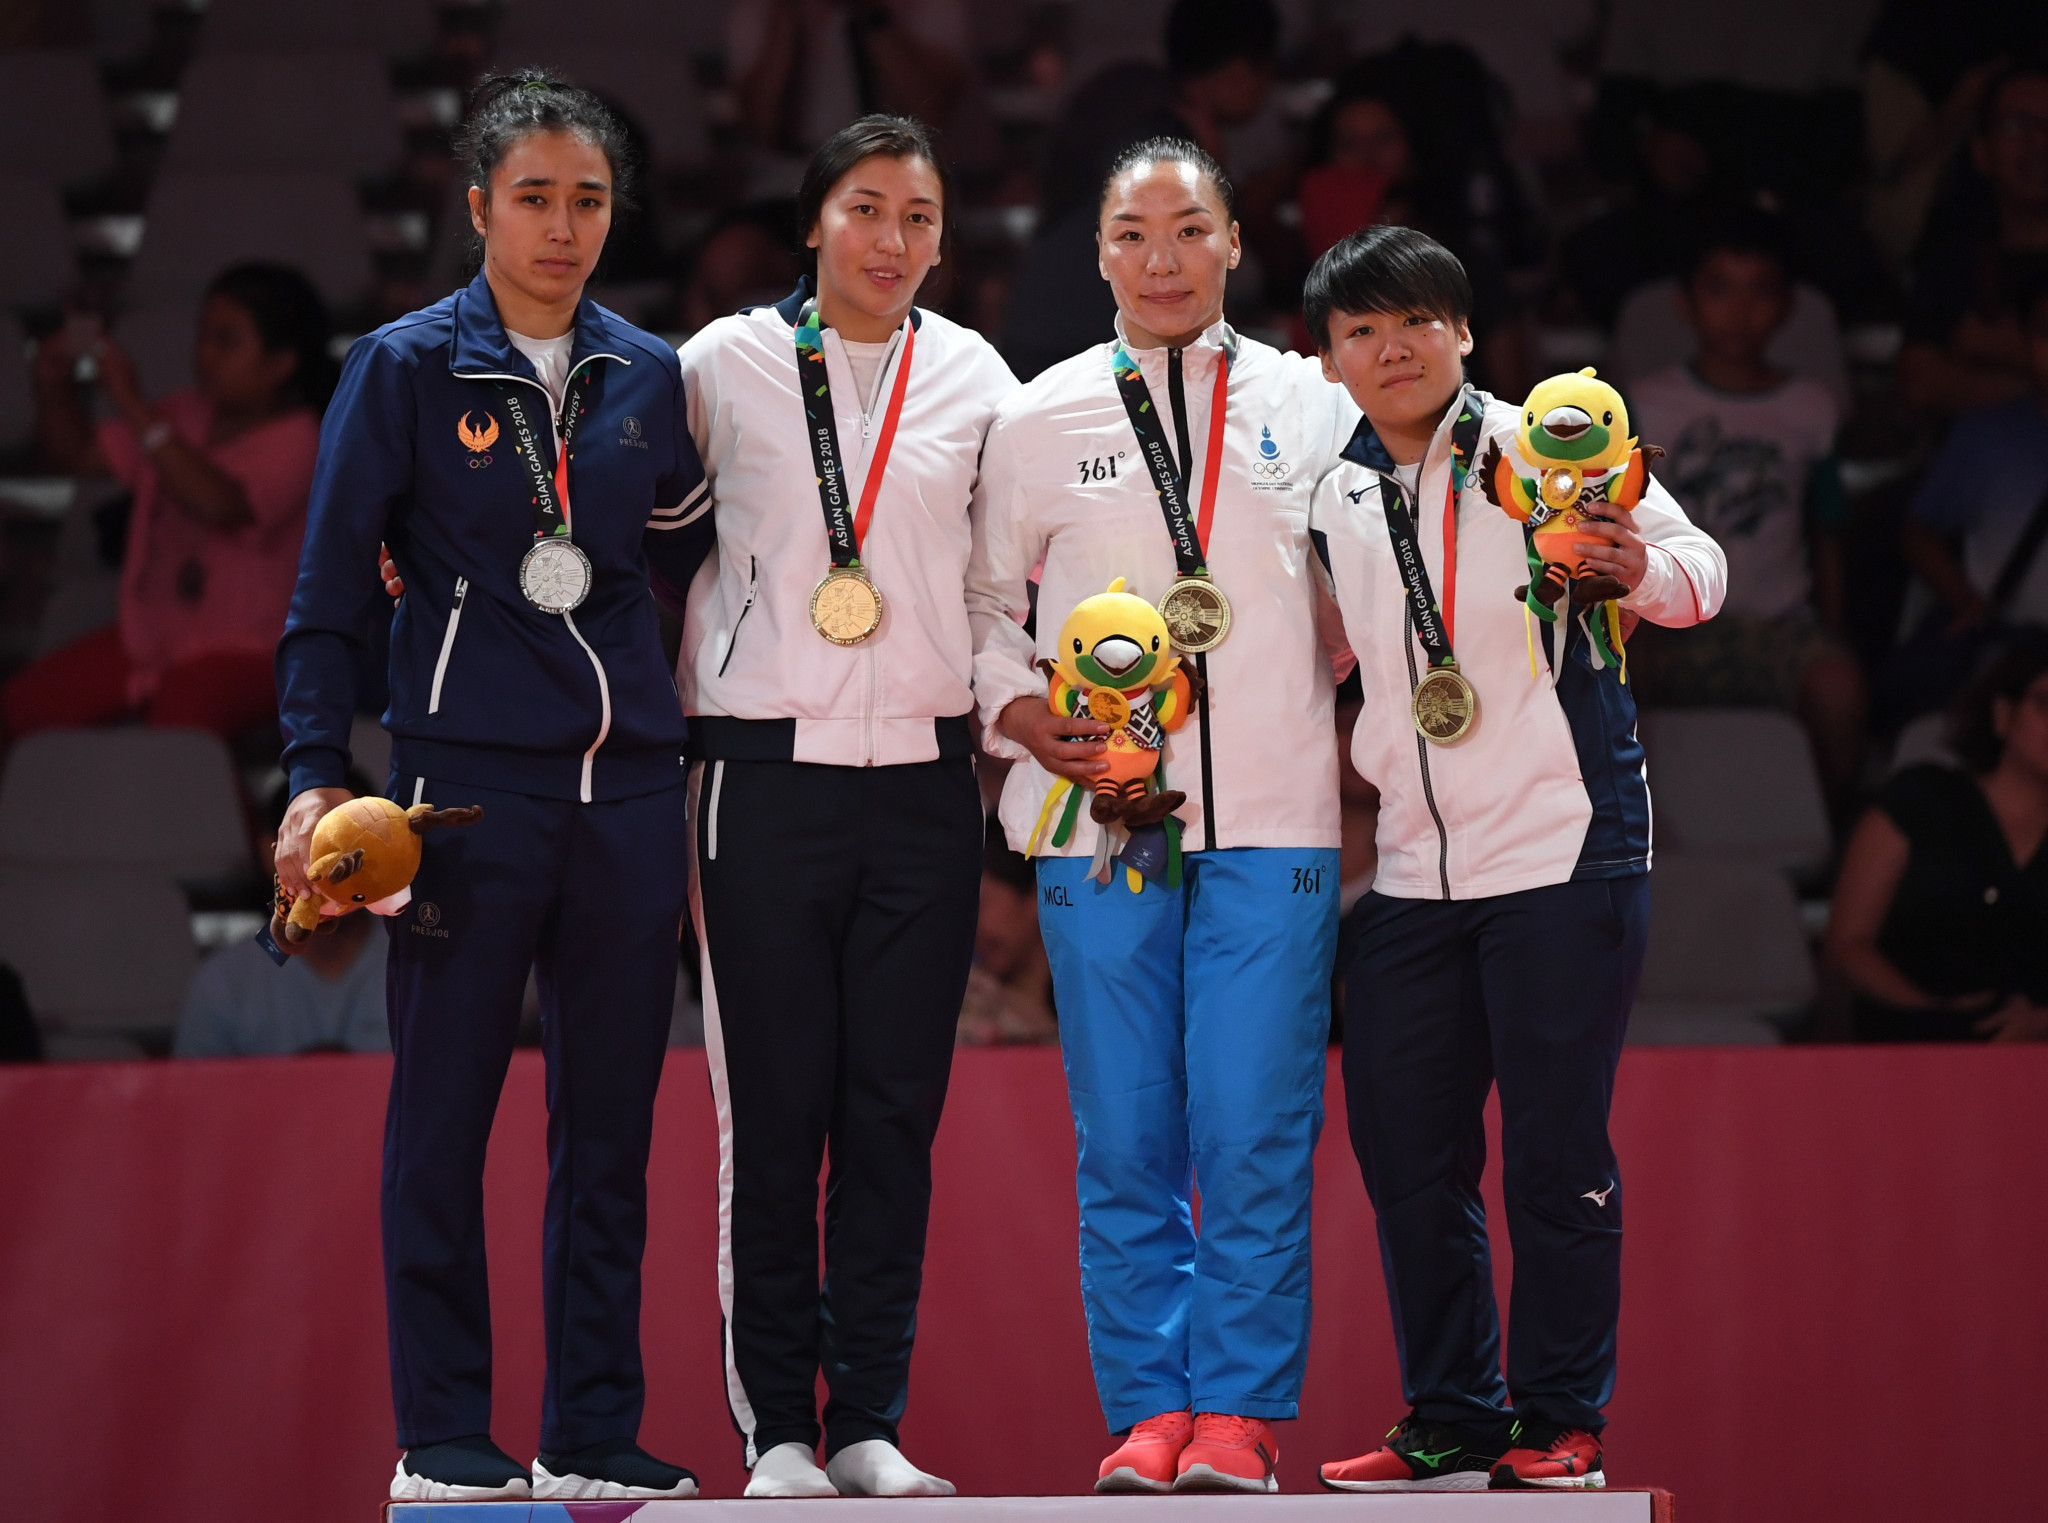 Uzbekistan picked up a total of 70 medals at the recent Asian Games in Jakarta and Palembang, whilst wearing Pres-Jog sportswear ©Getty Images